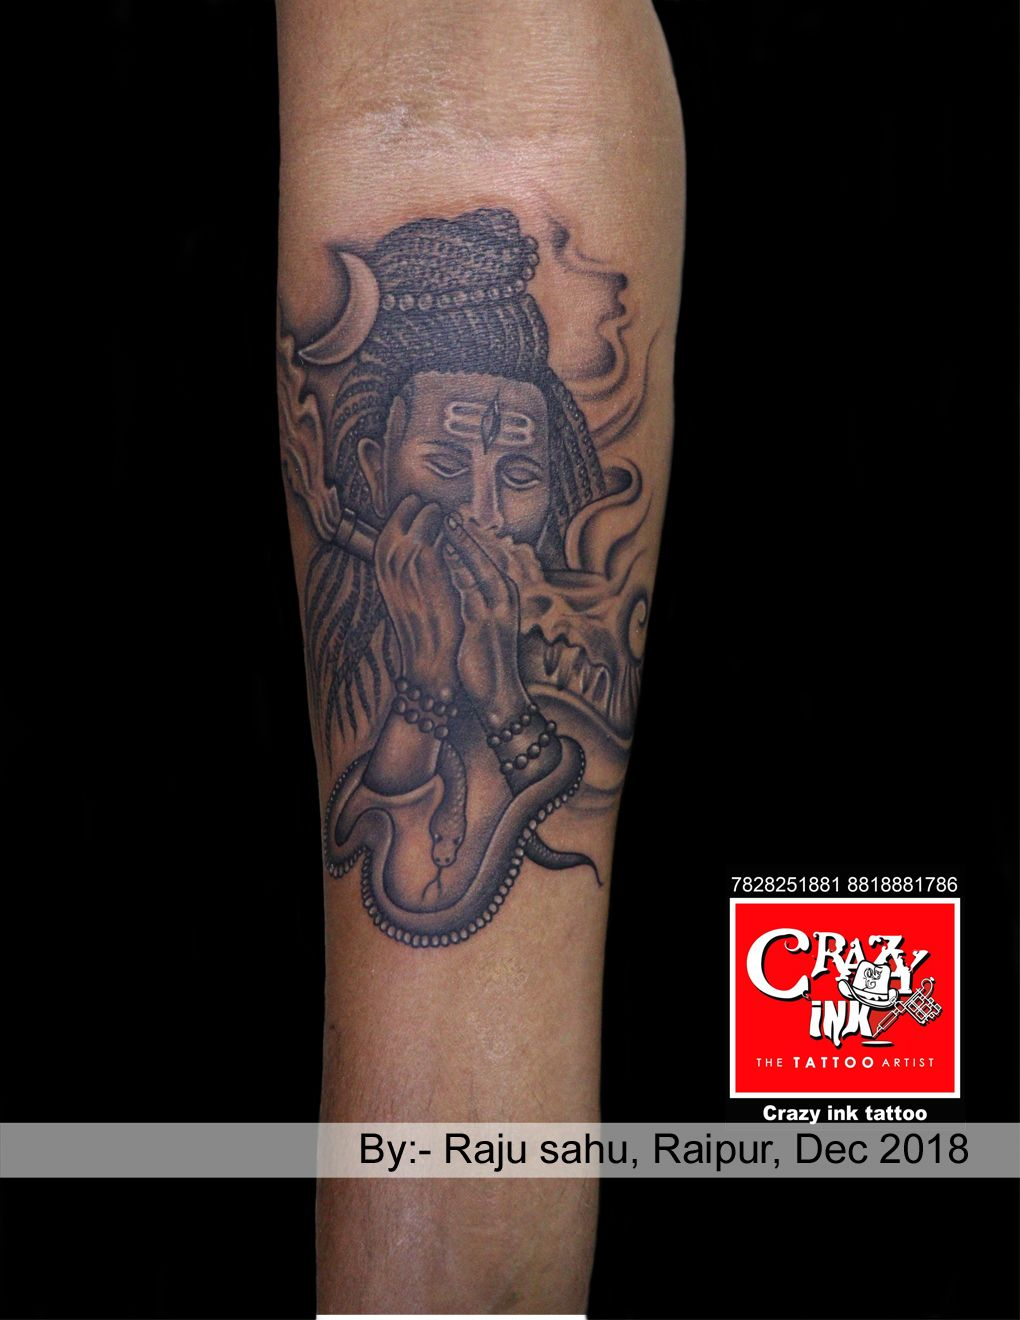 e1973cff1 Smoking Lord Shiva tattoo with Chillum. Done by tattoo artist Raju sahu, At  crazy